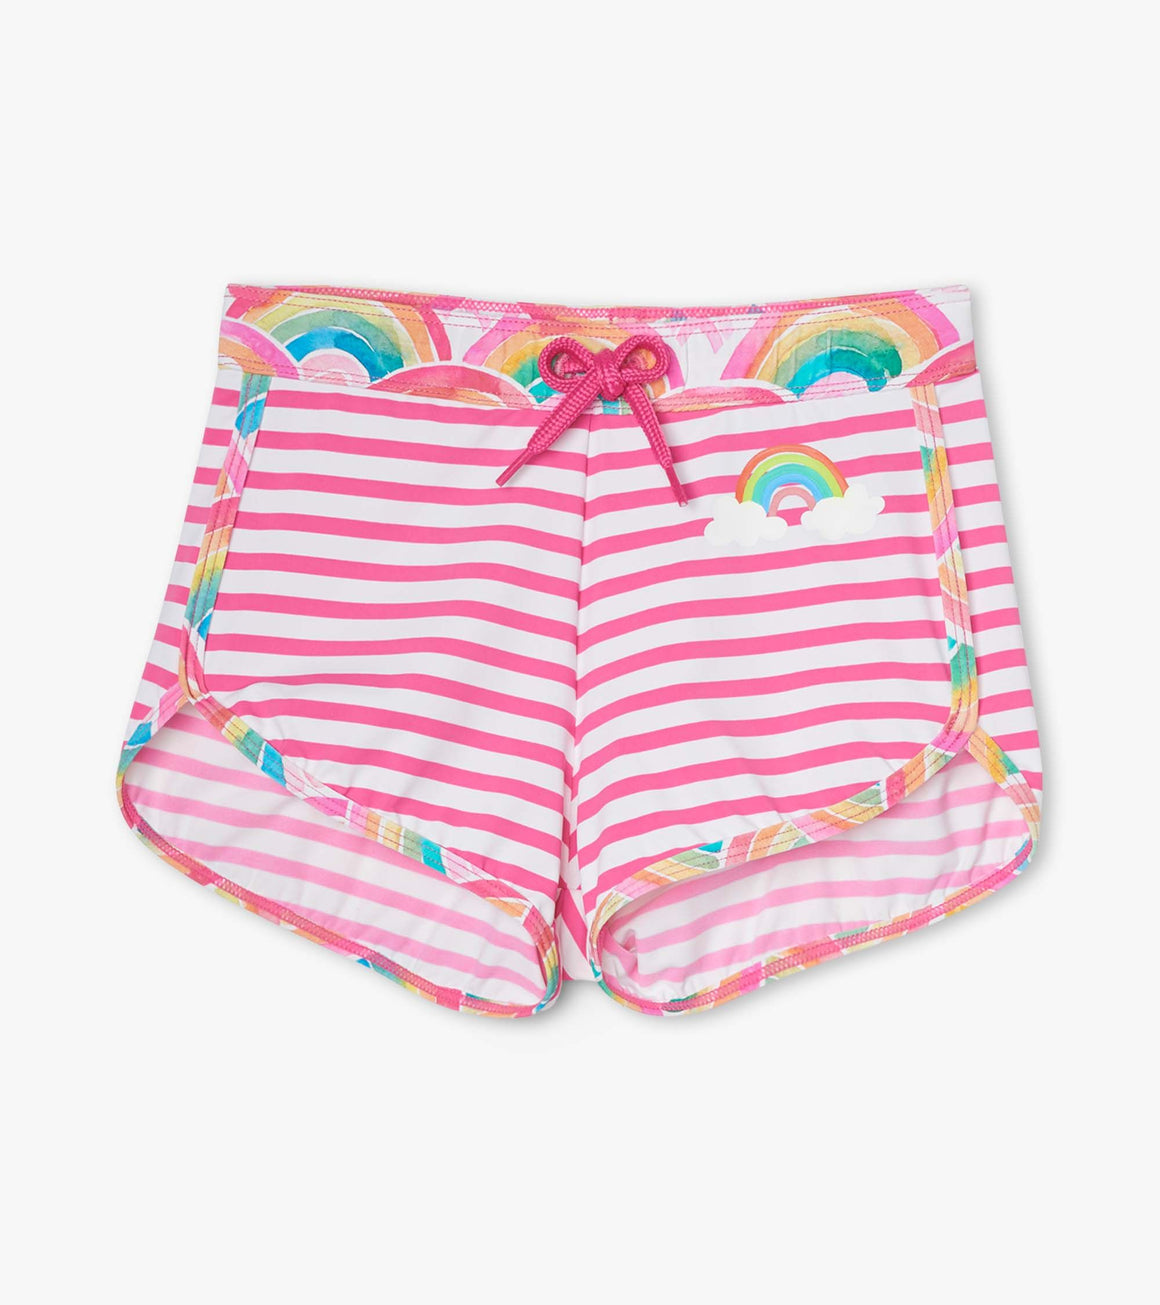 Girls UPF50+ quick dry swim shorts in rainbow stripe print.